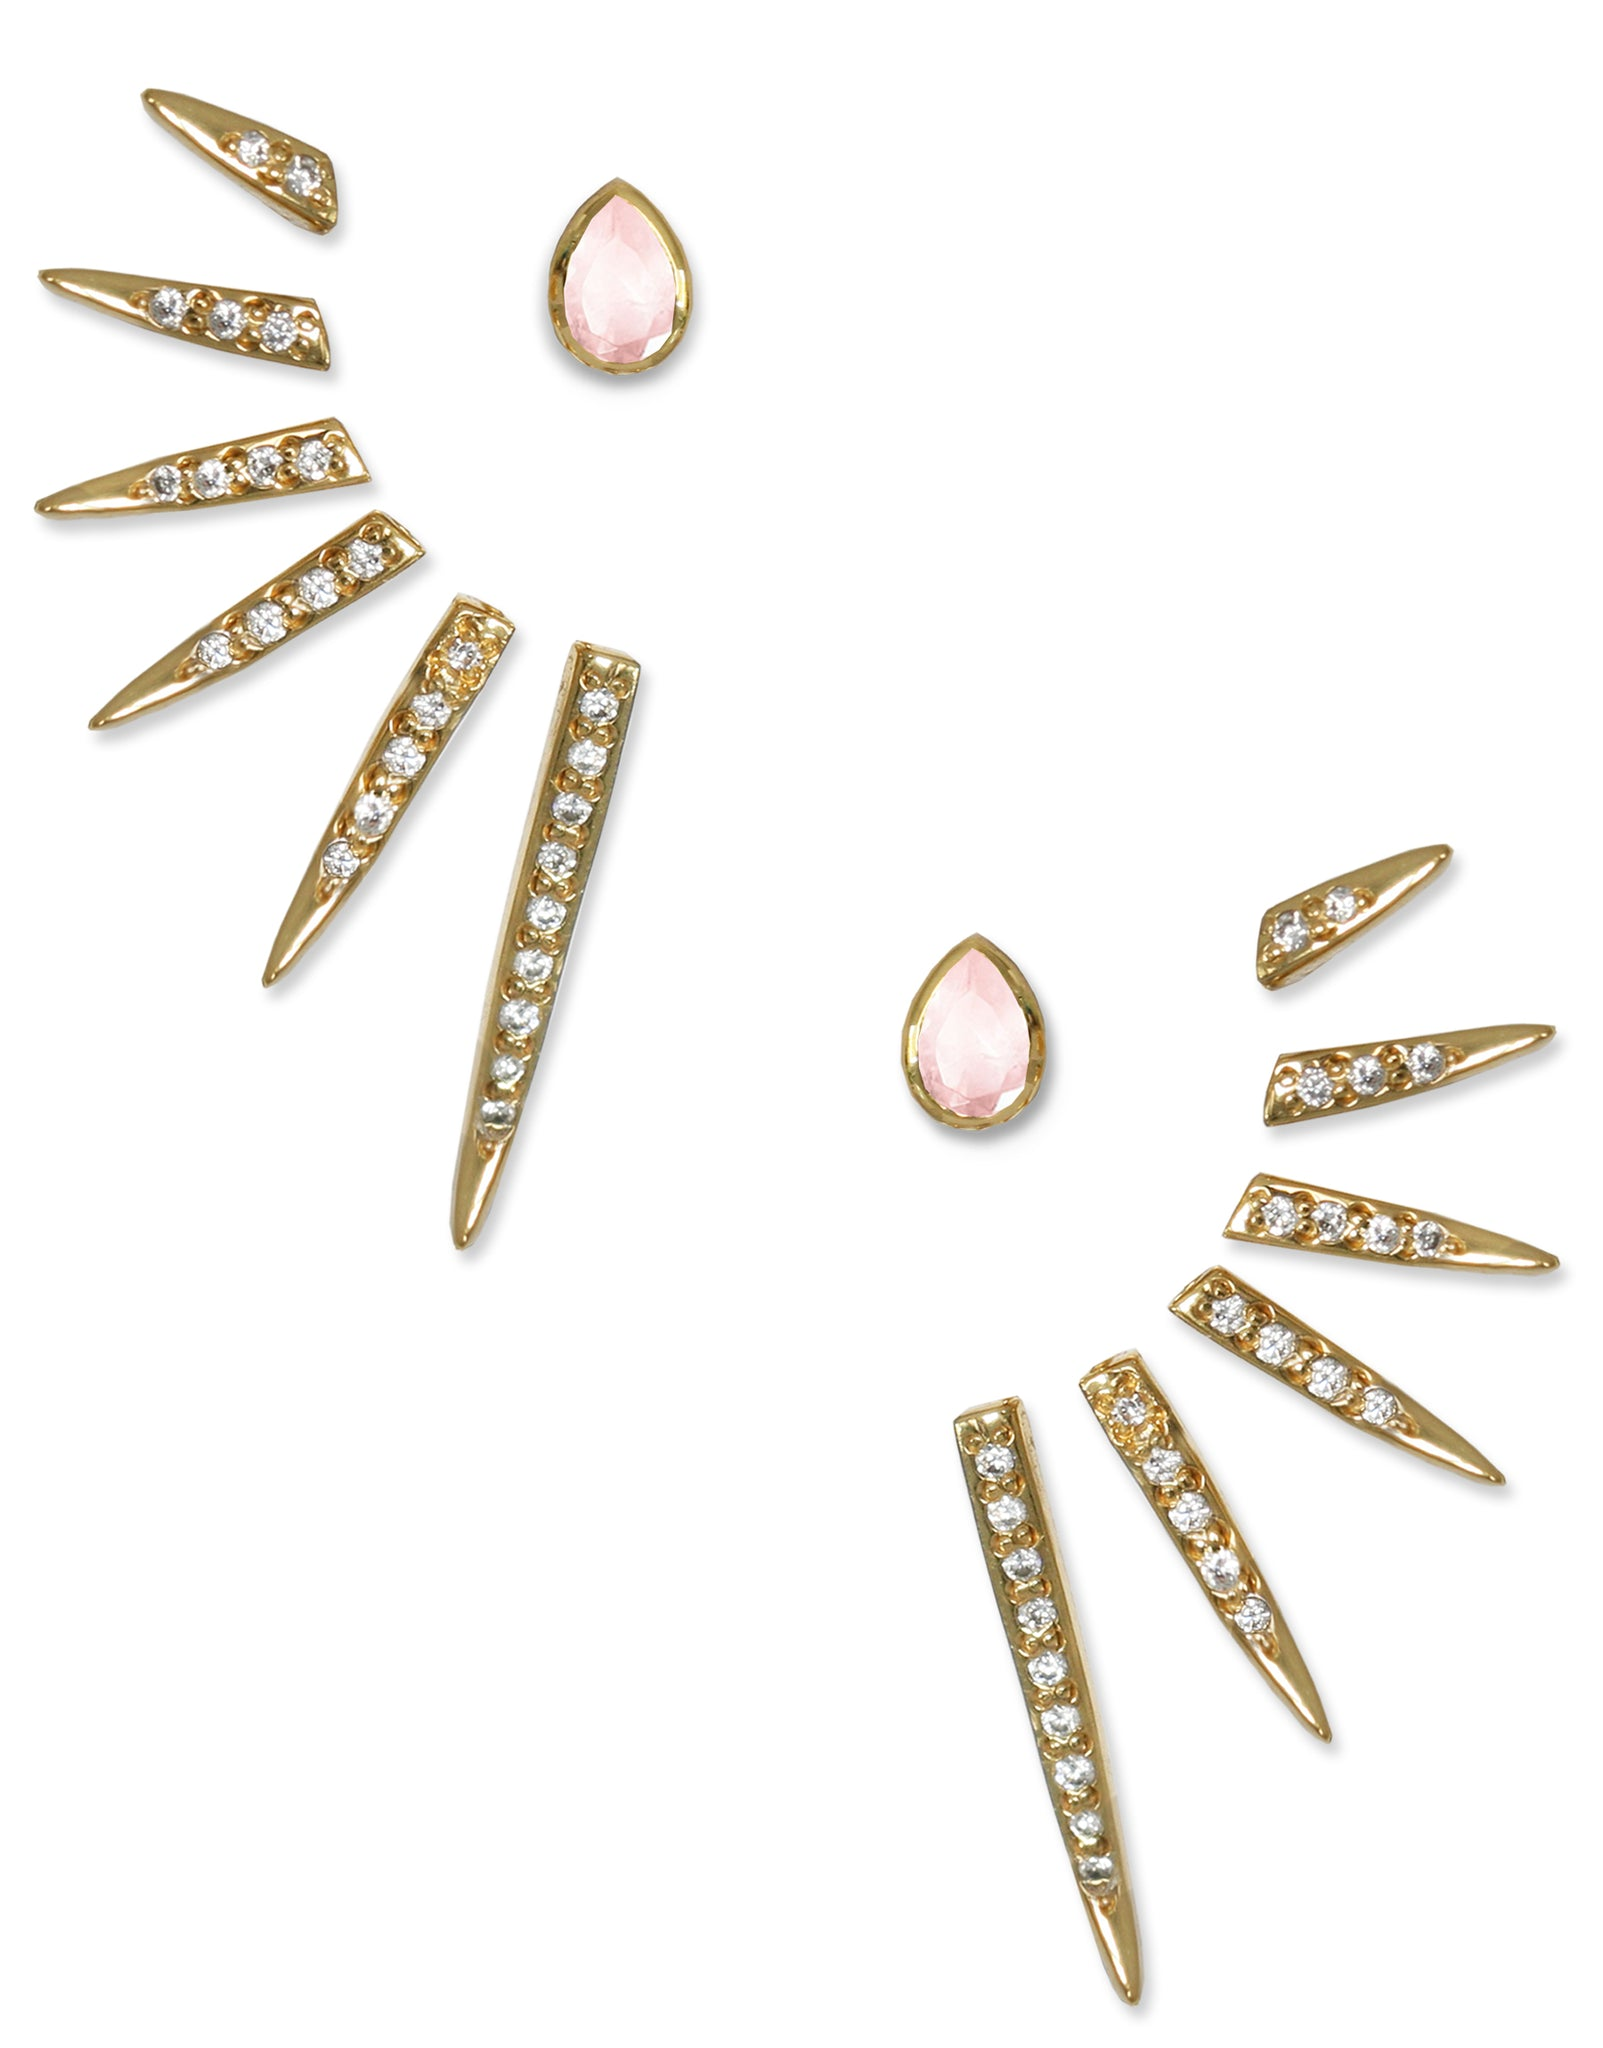 CATHERINE EAR JACKETS | 18K Gold Plated with Gemstones - Eddera